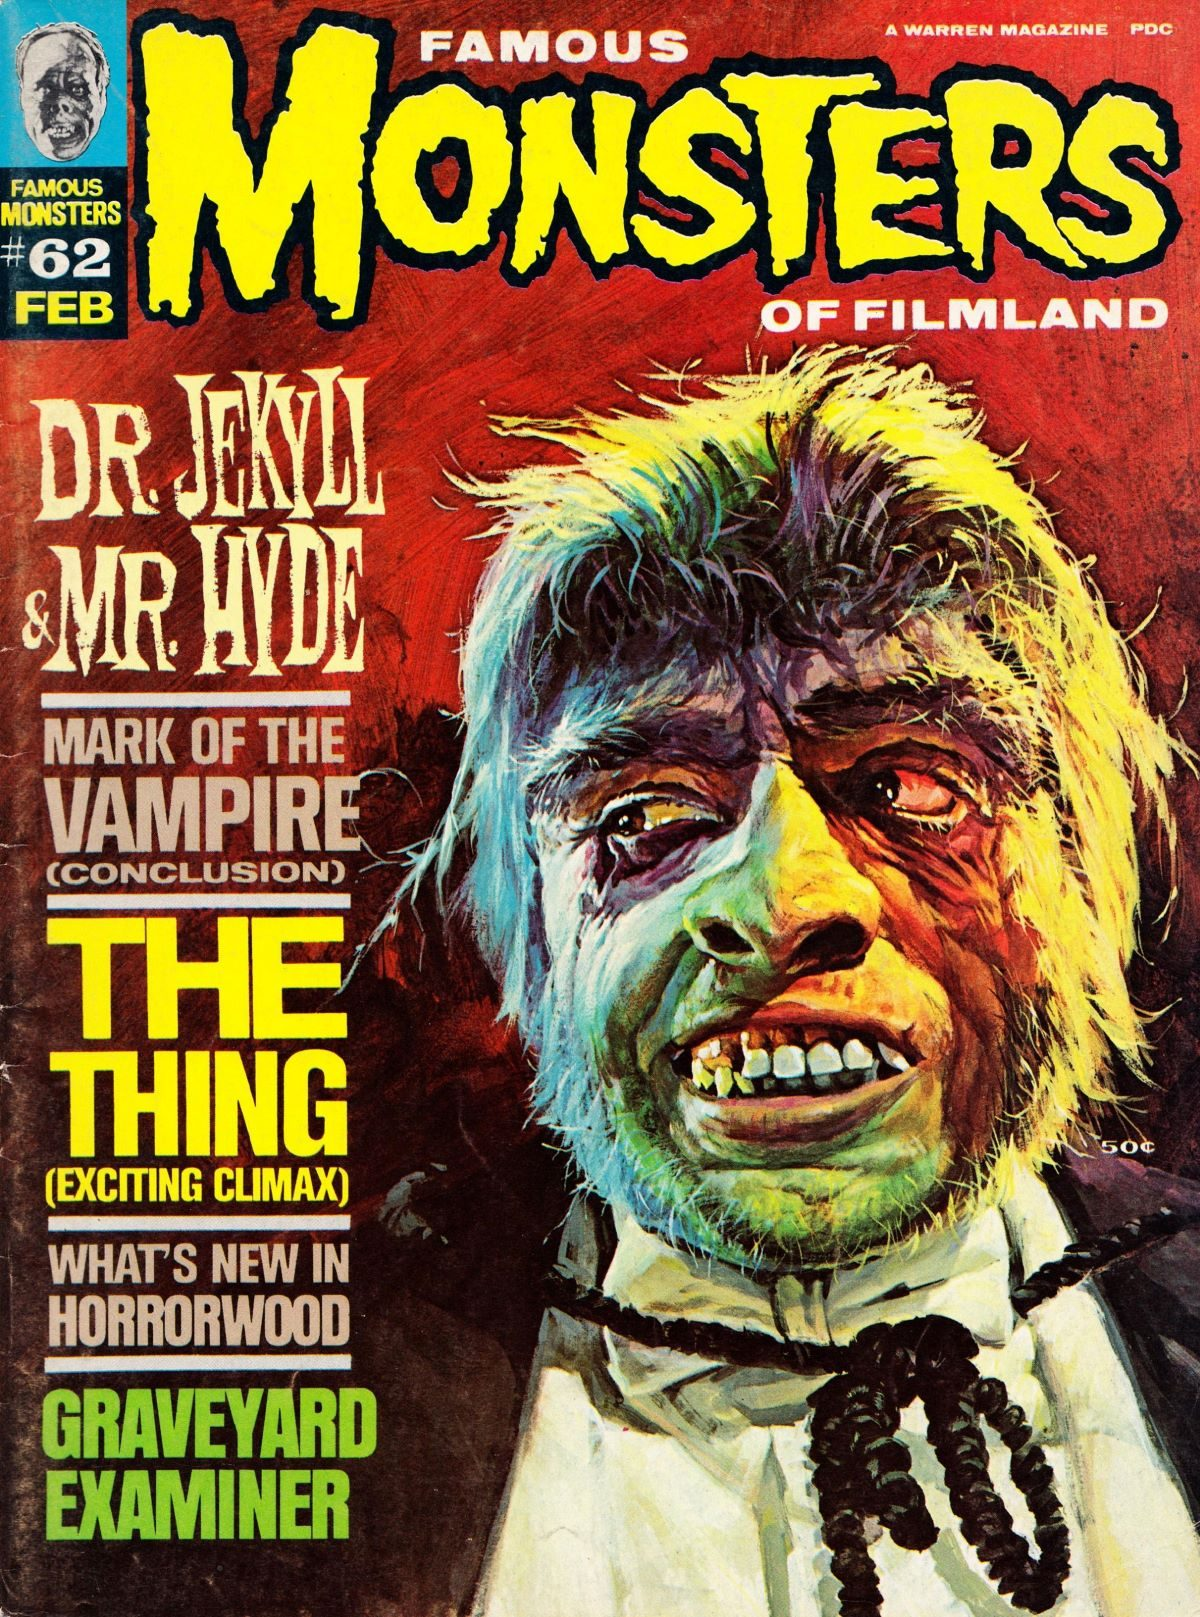 Famous Monsters of Filmland, magazine, horror films, Frederic March, Mr Hyde, 1960s